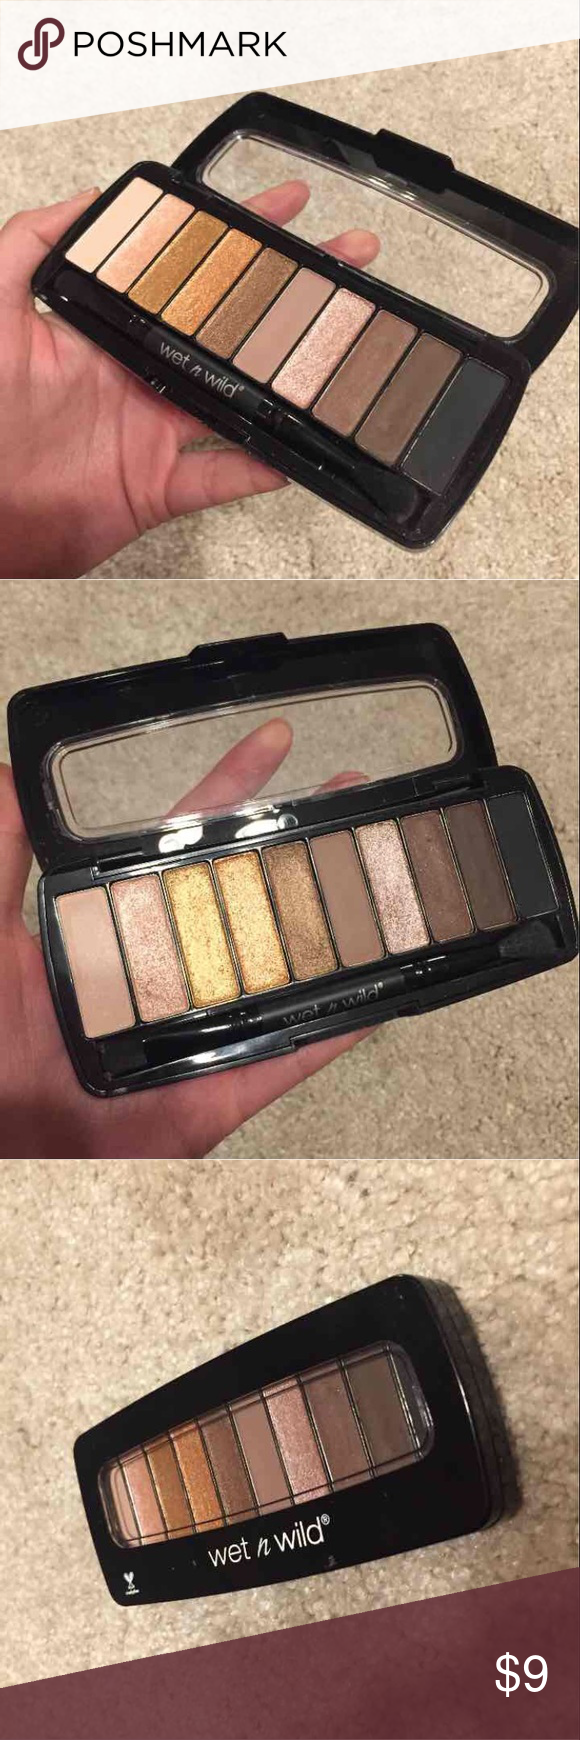 Wet n Wild Studio Eyeshadow Palette Eyeshadow, Wet n